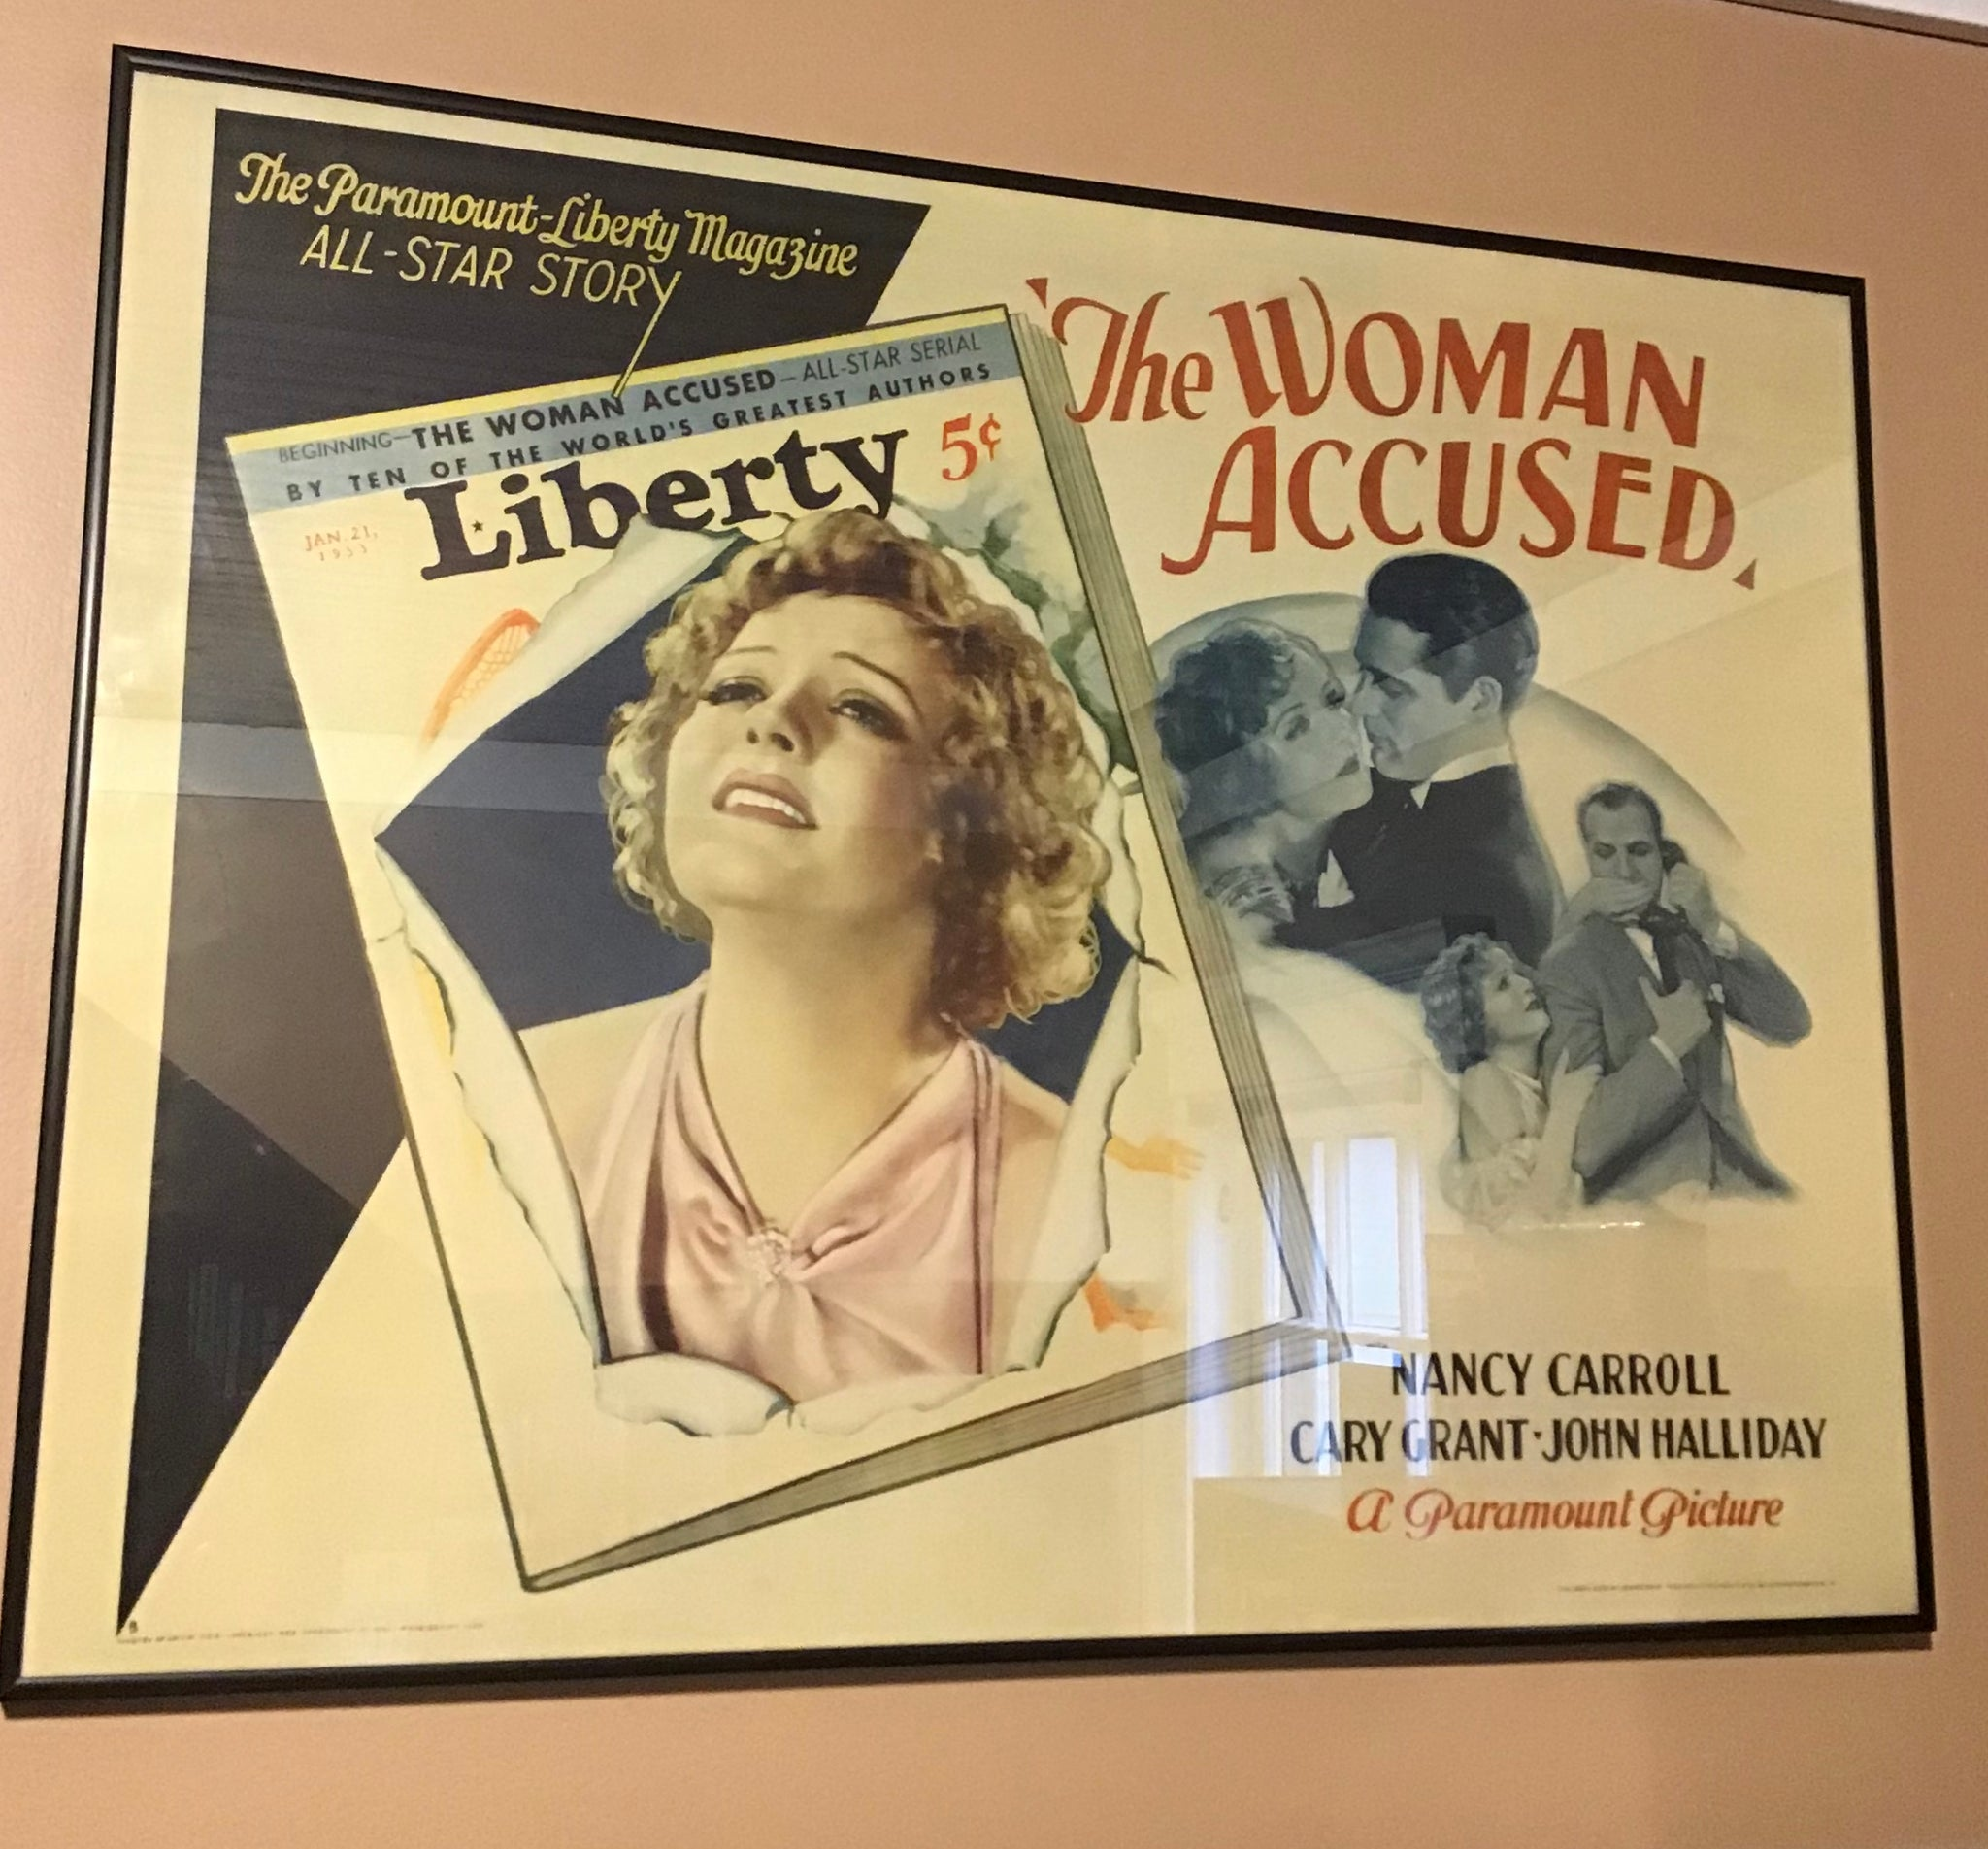 The Woman Accused (movie poster)